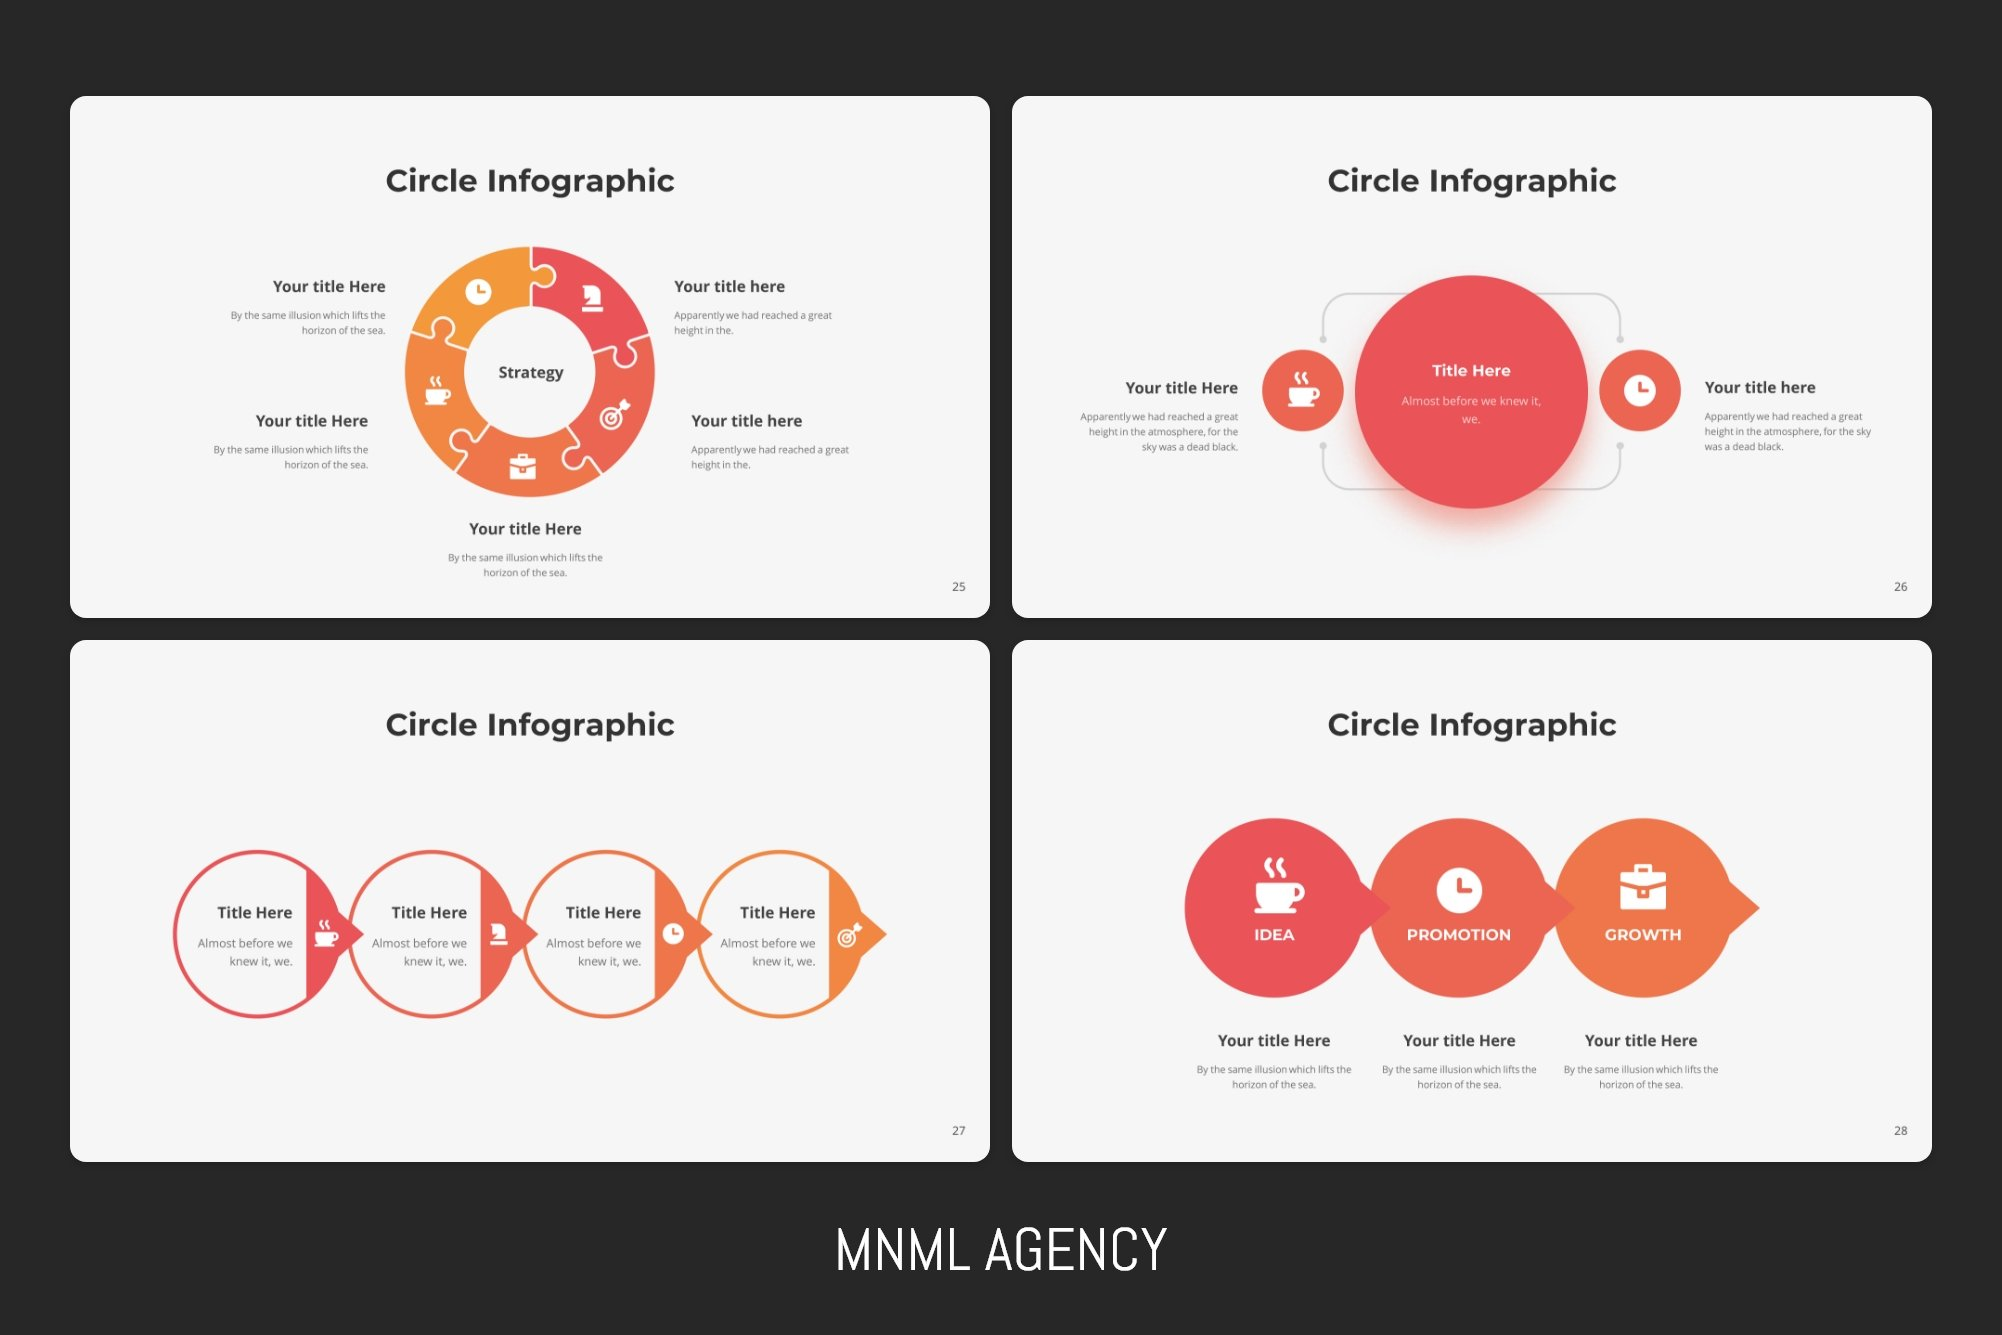 The classic display of infographics in this template has been modified and presented in a modern business environment.